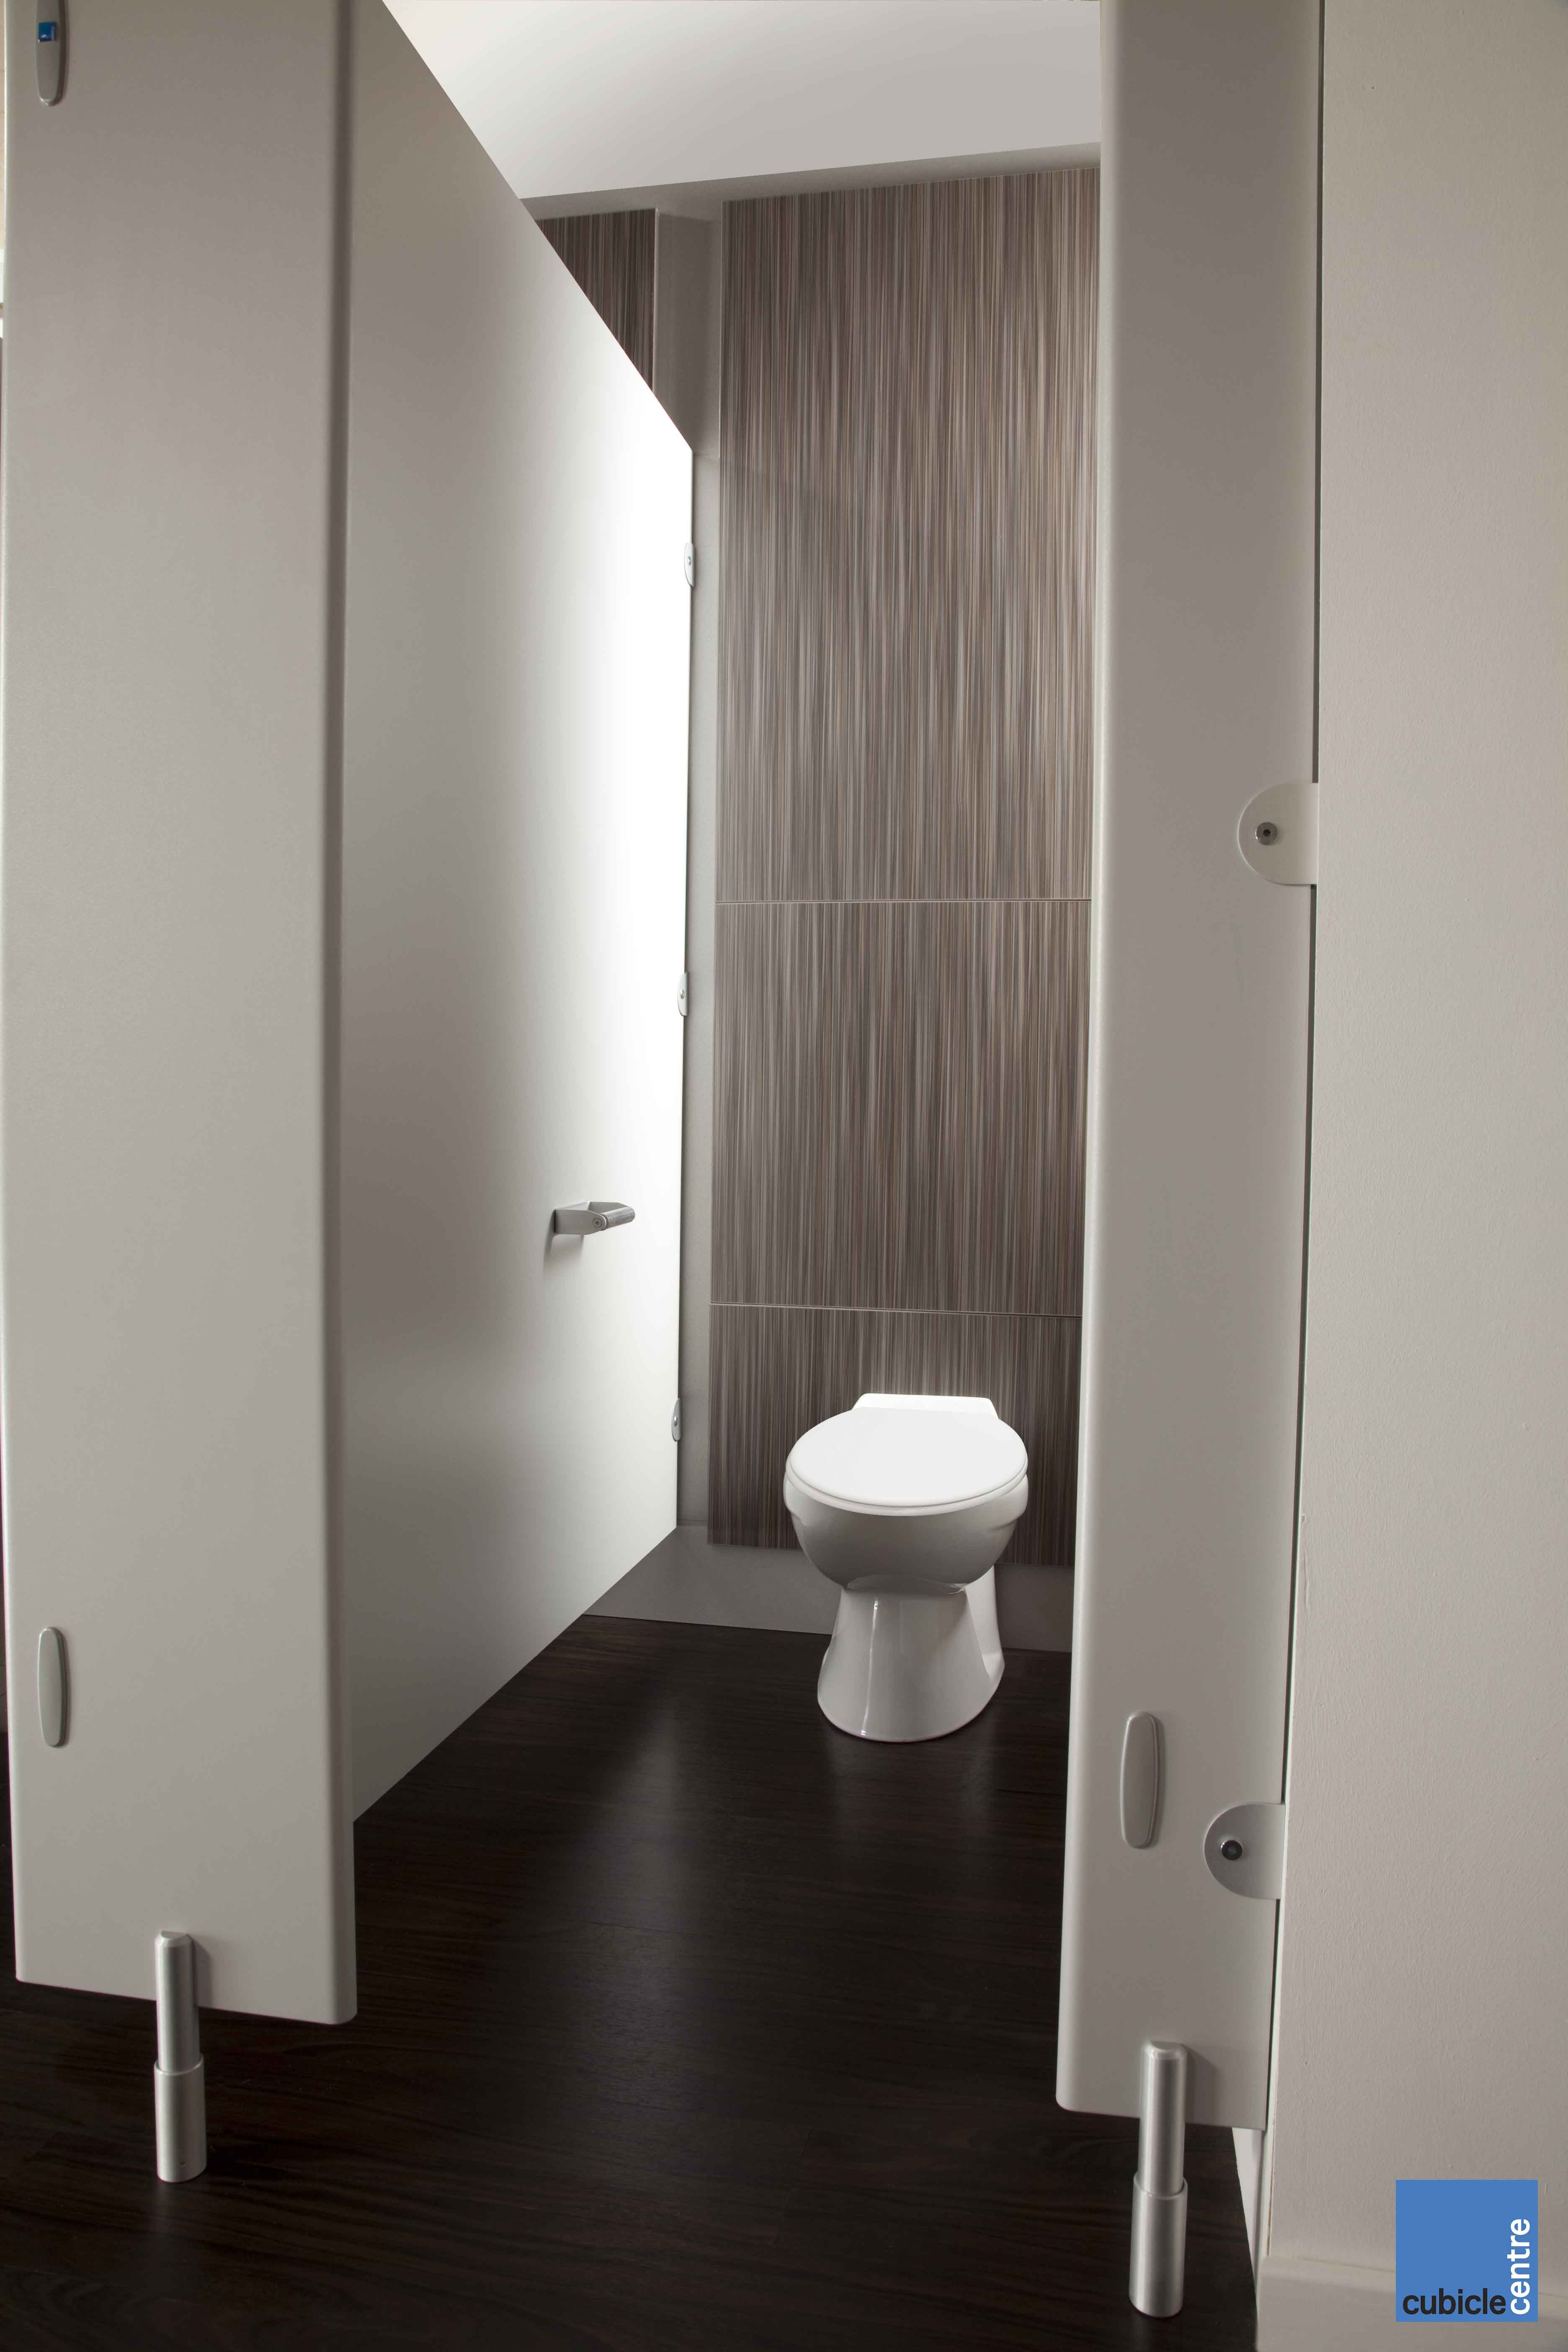 Pin by jed rocero on church ideas restroom design - Restaurant bathroom design ideas ...